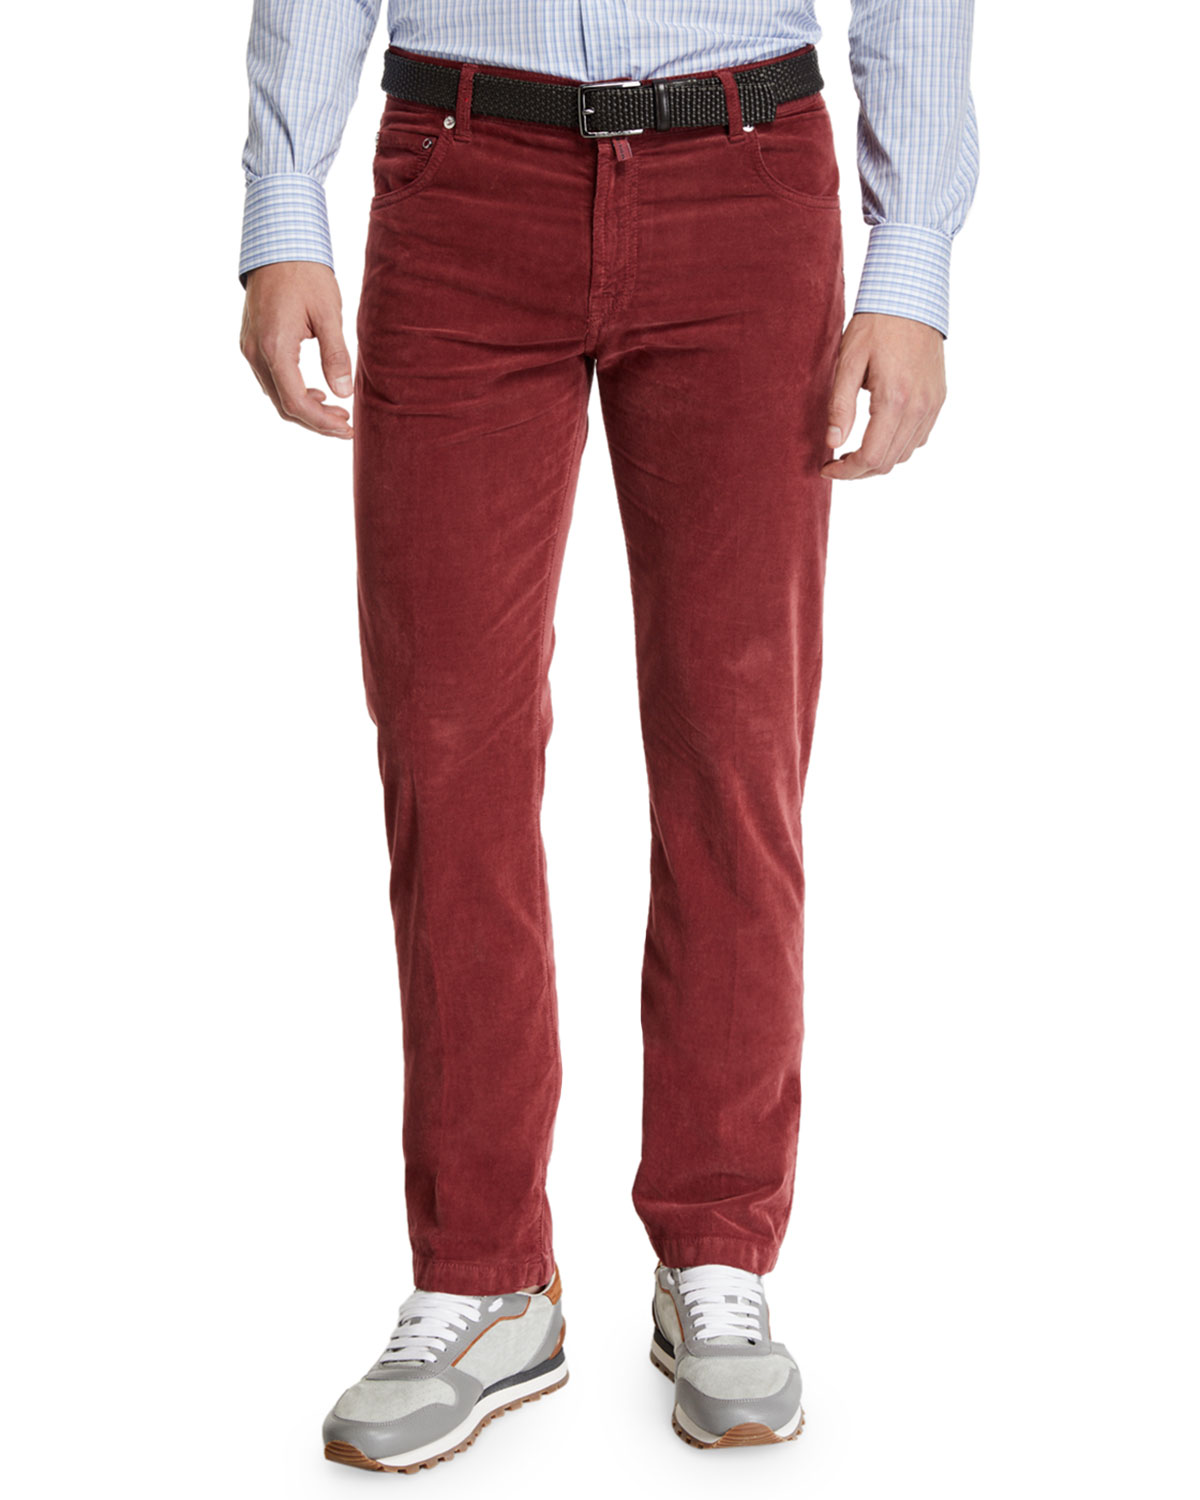 Kiton Pants MEN'S STRAIGHT-LEG CORDUROY 5-POCKET PANTS